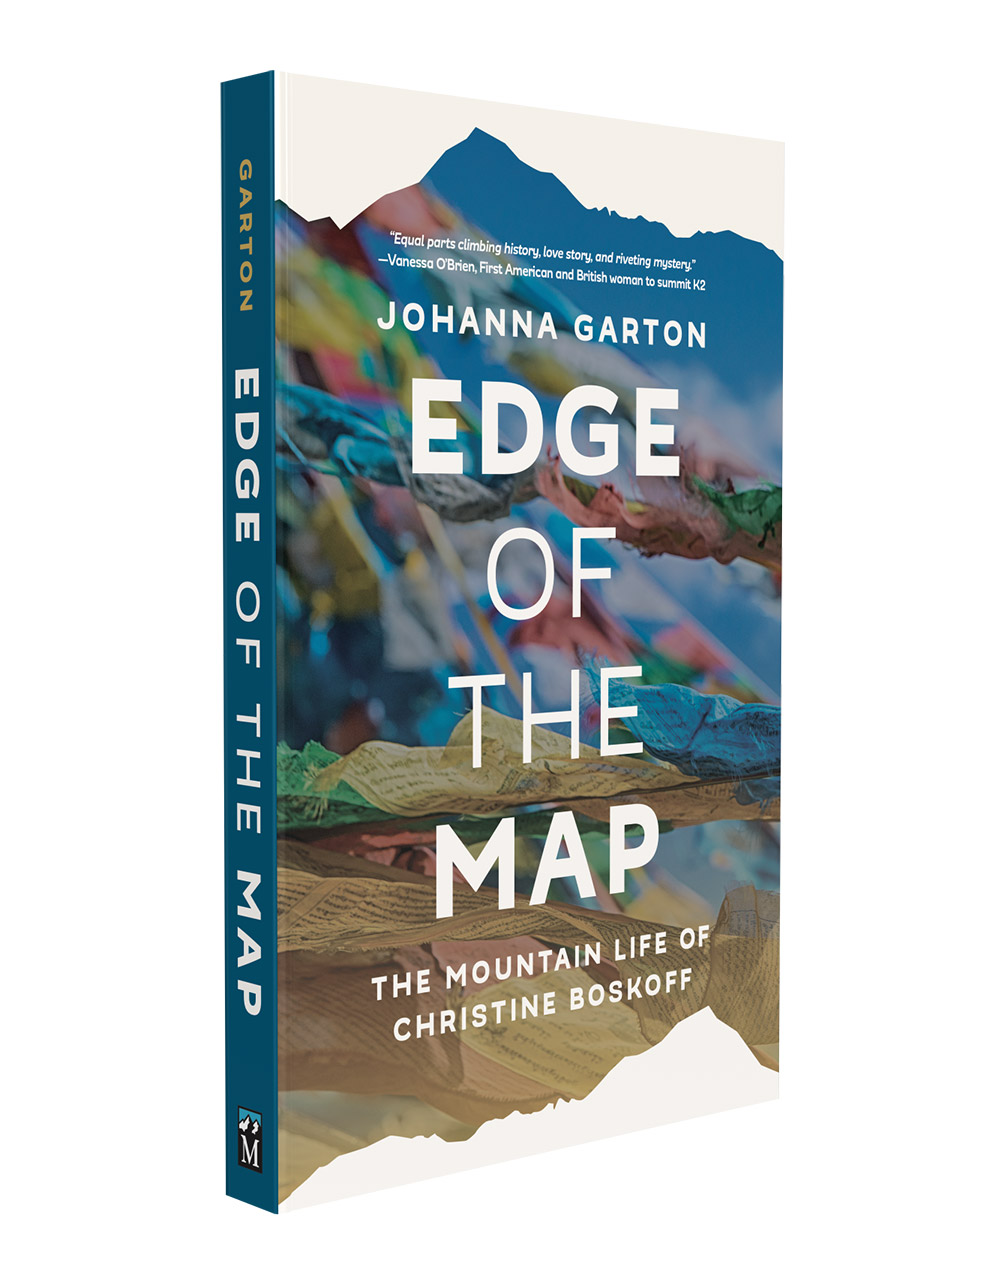 """Edge of the Map"" is the biography of Christine Boskoff."